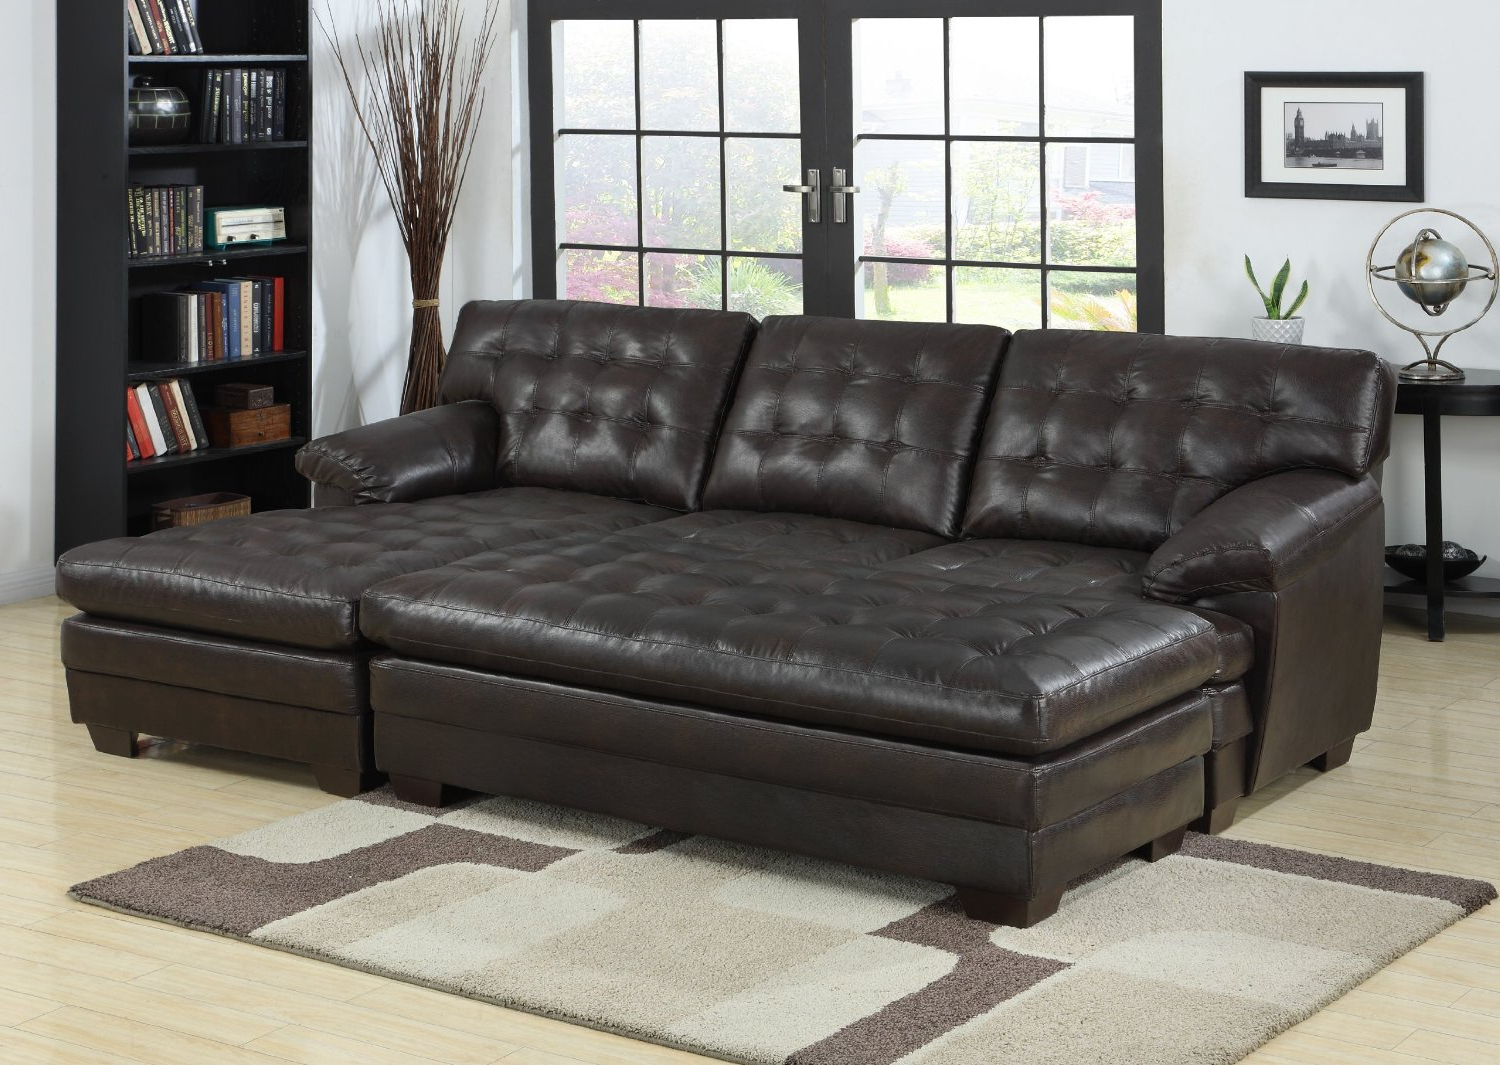 Copenhagen Reclining Sectional Sofas With Right Storage Chaise For Well Known 2 Piece Sectional Sofa With Chaise Design – Homesfeed (View 15 of 25)